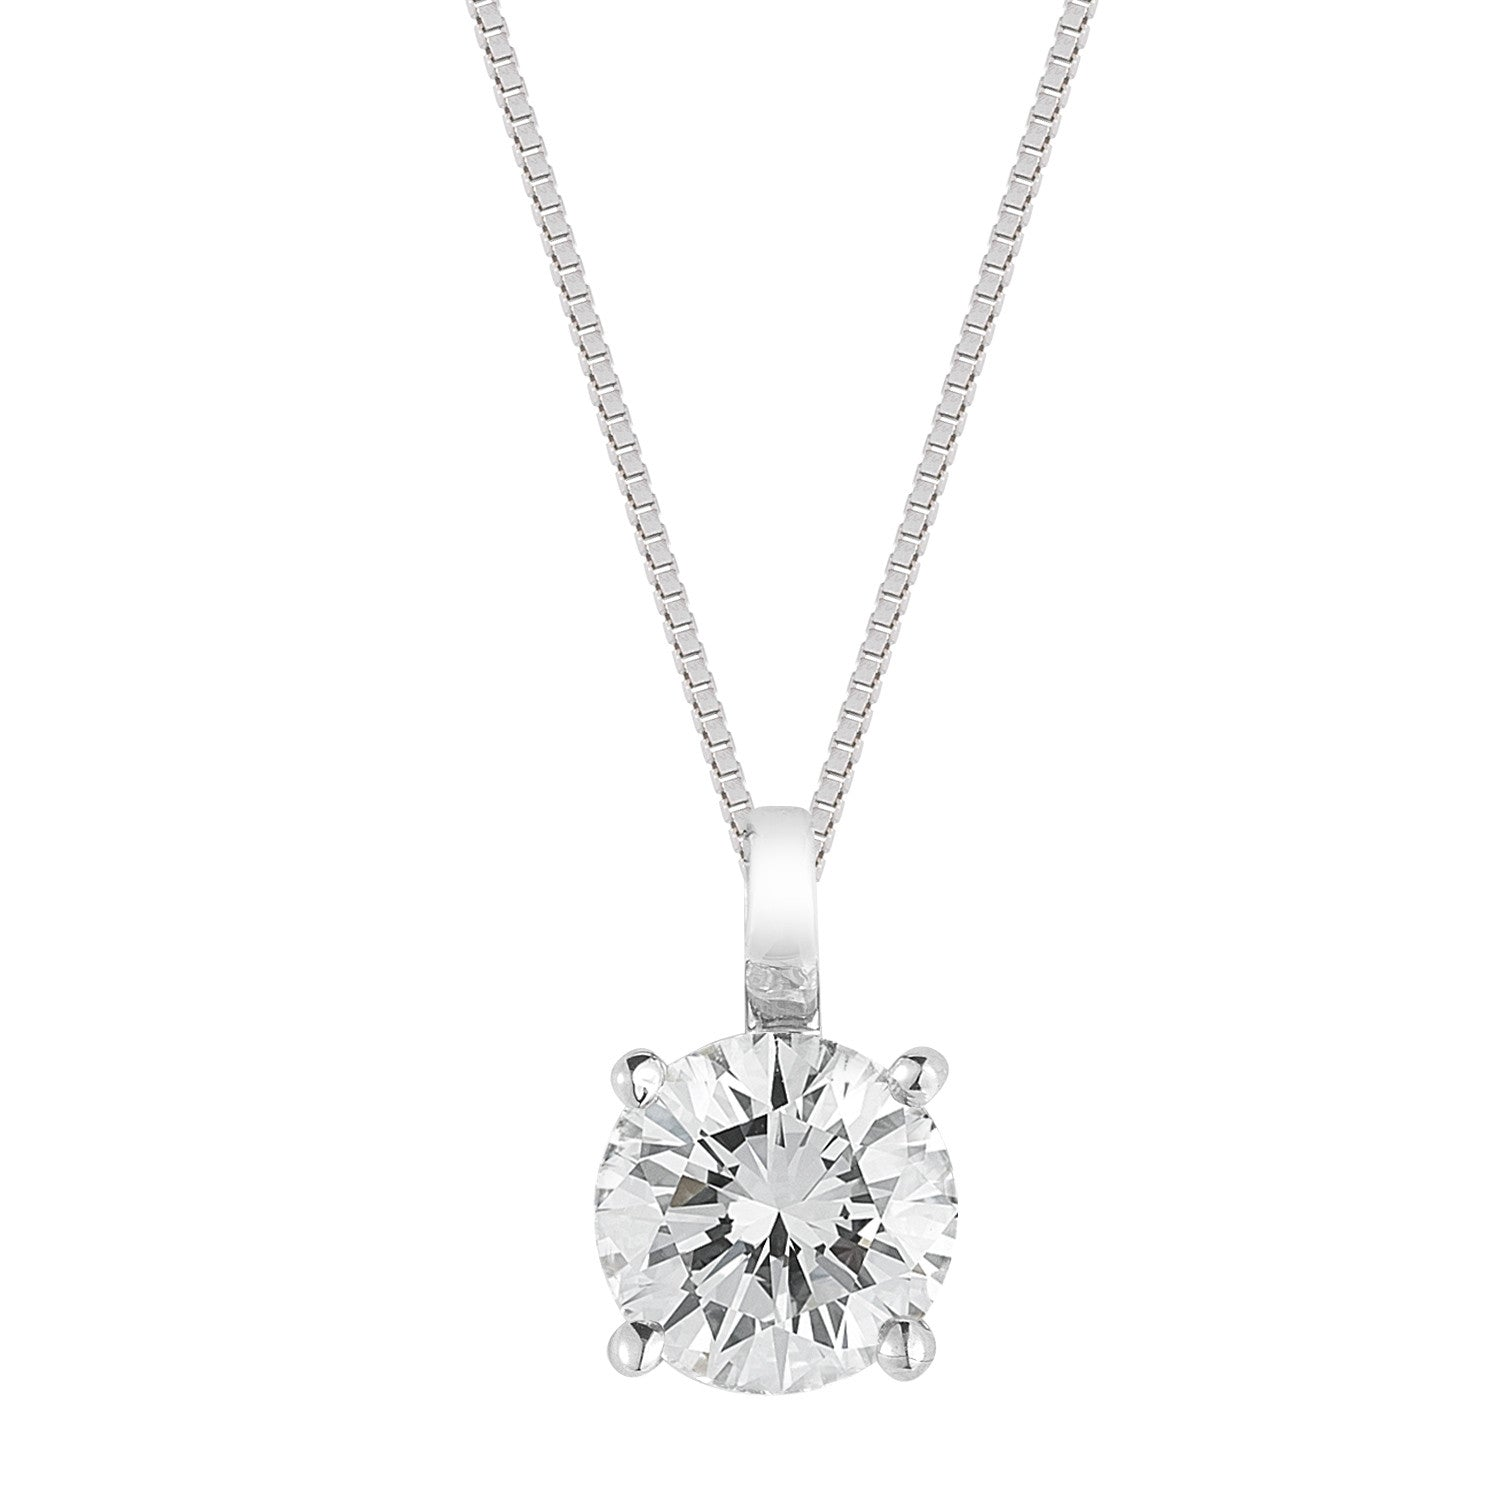 spring click to item enhancer full pendant with diamond forward expand solitaire sale necklace